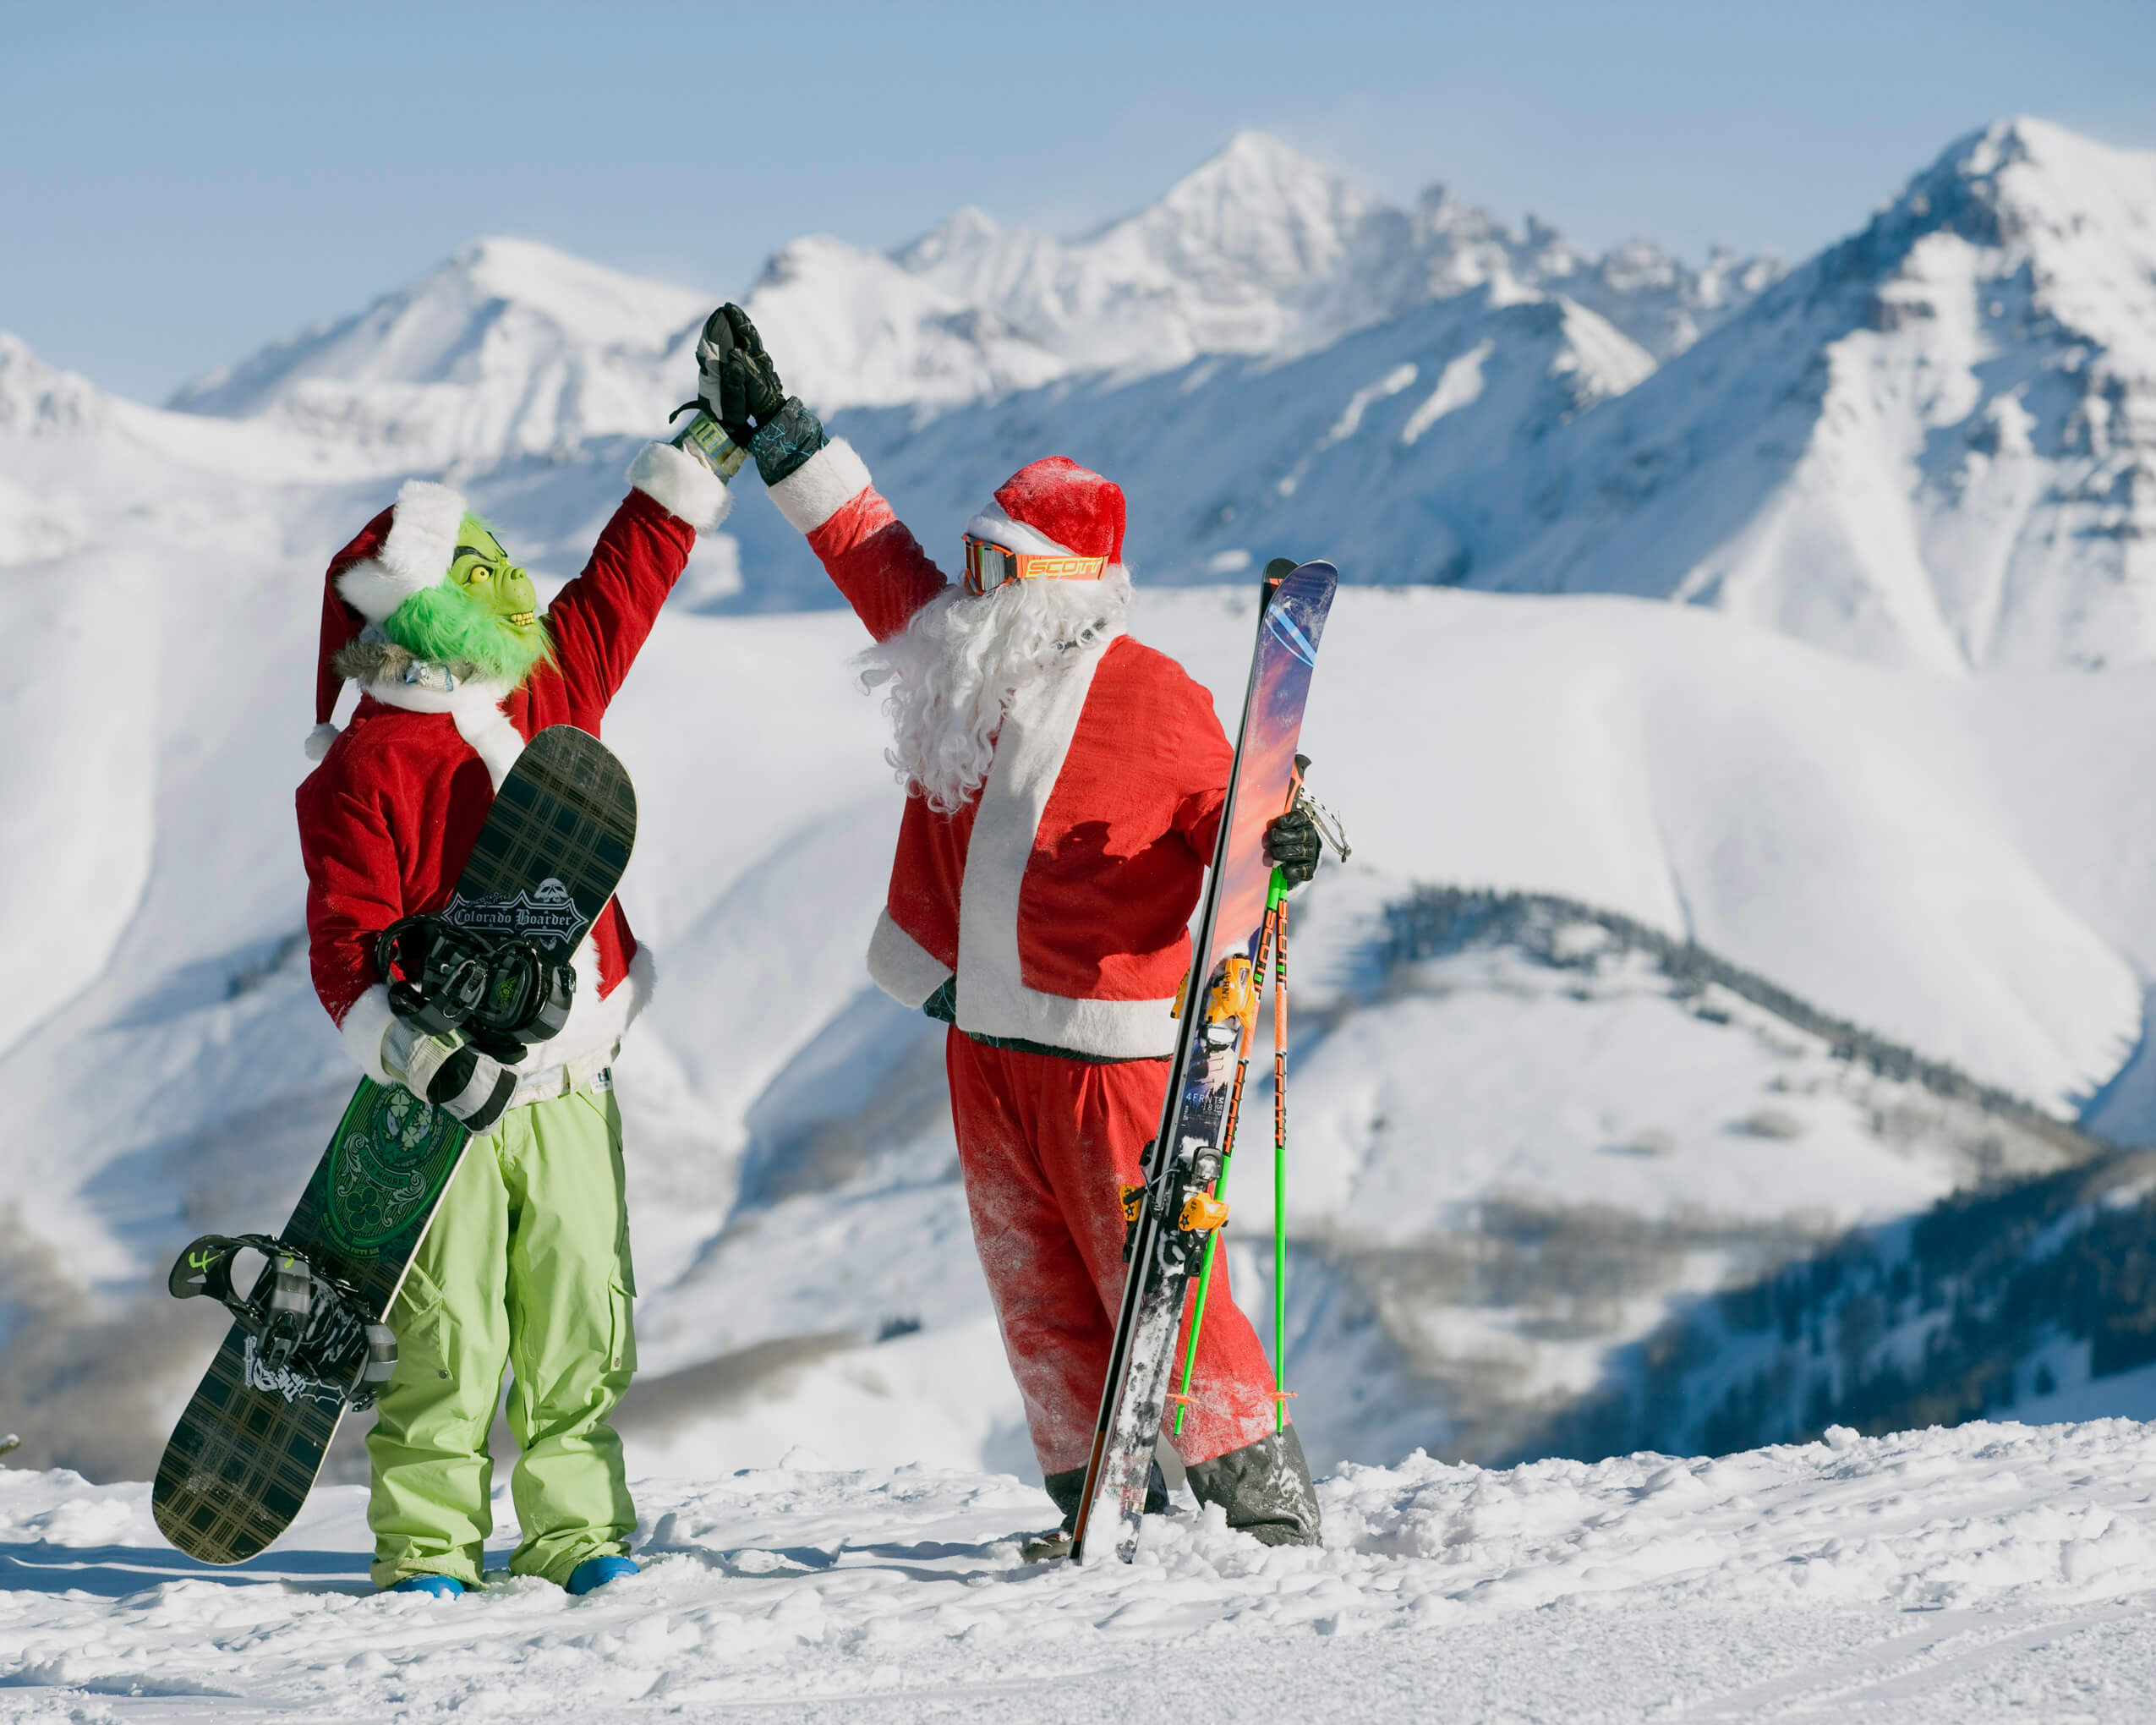 Santa and Grinch at Crested Butte